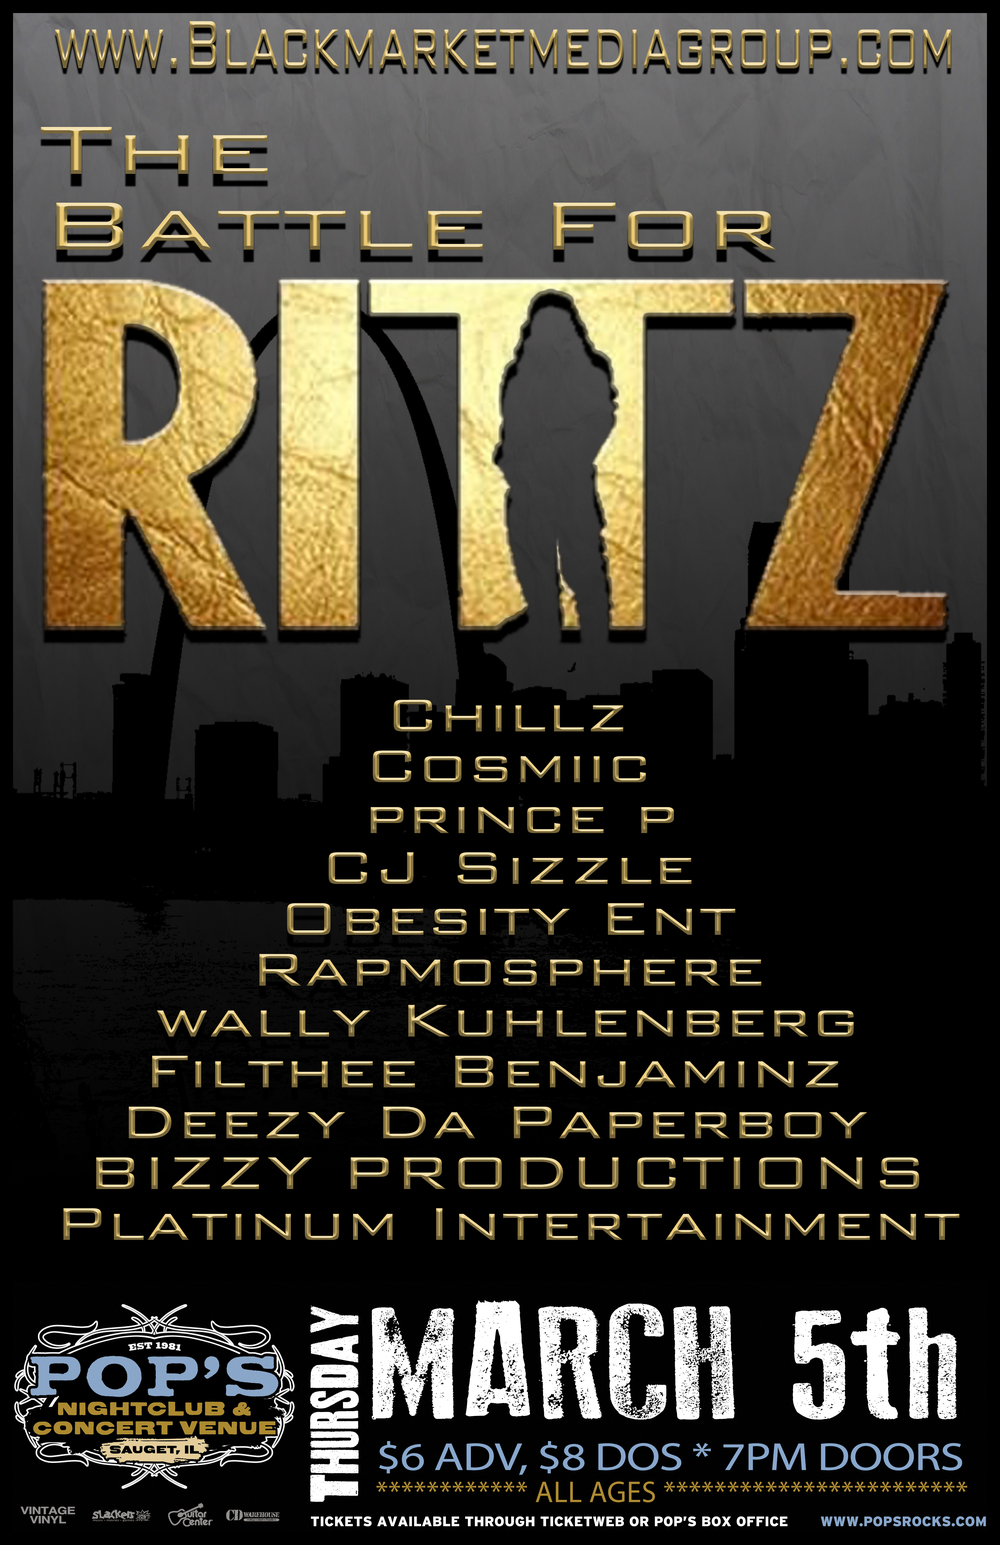 BATTLE FOR RITTZ.jpg